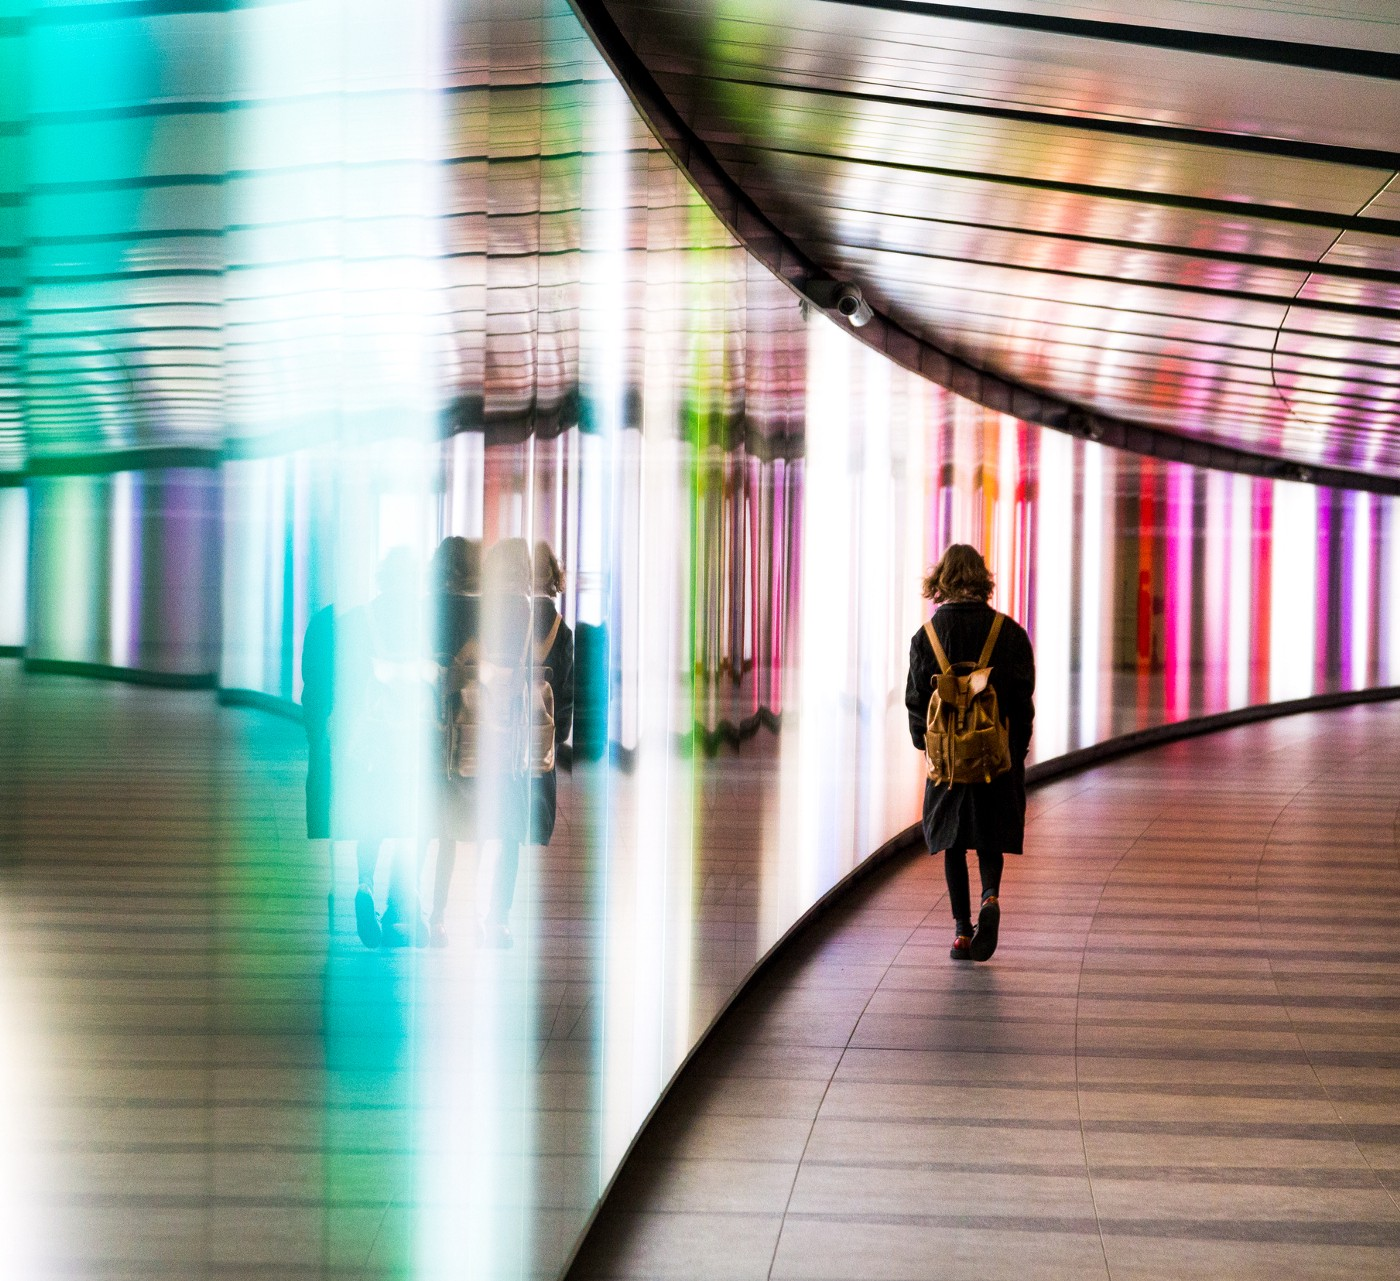 A photo of a woman with a backpack on walking through a bright rainbow-lit curved hallway.